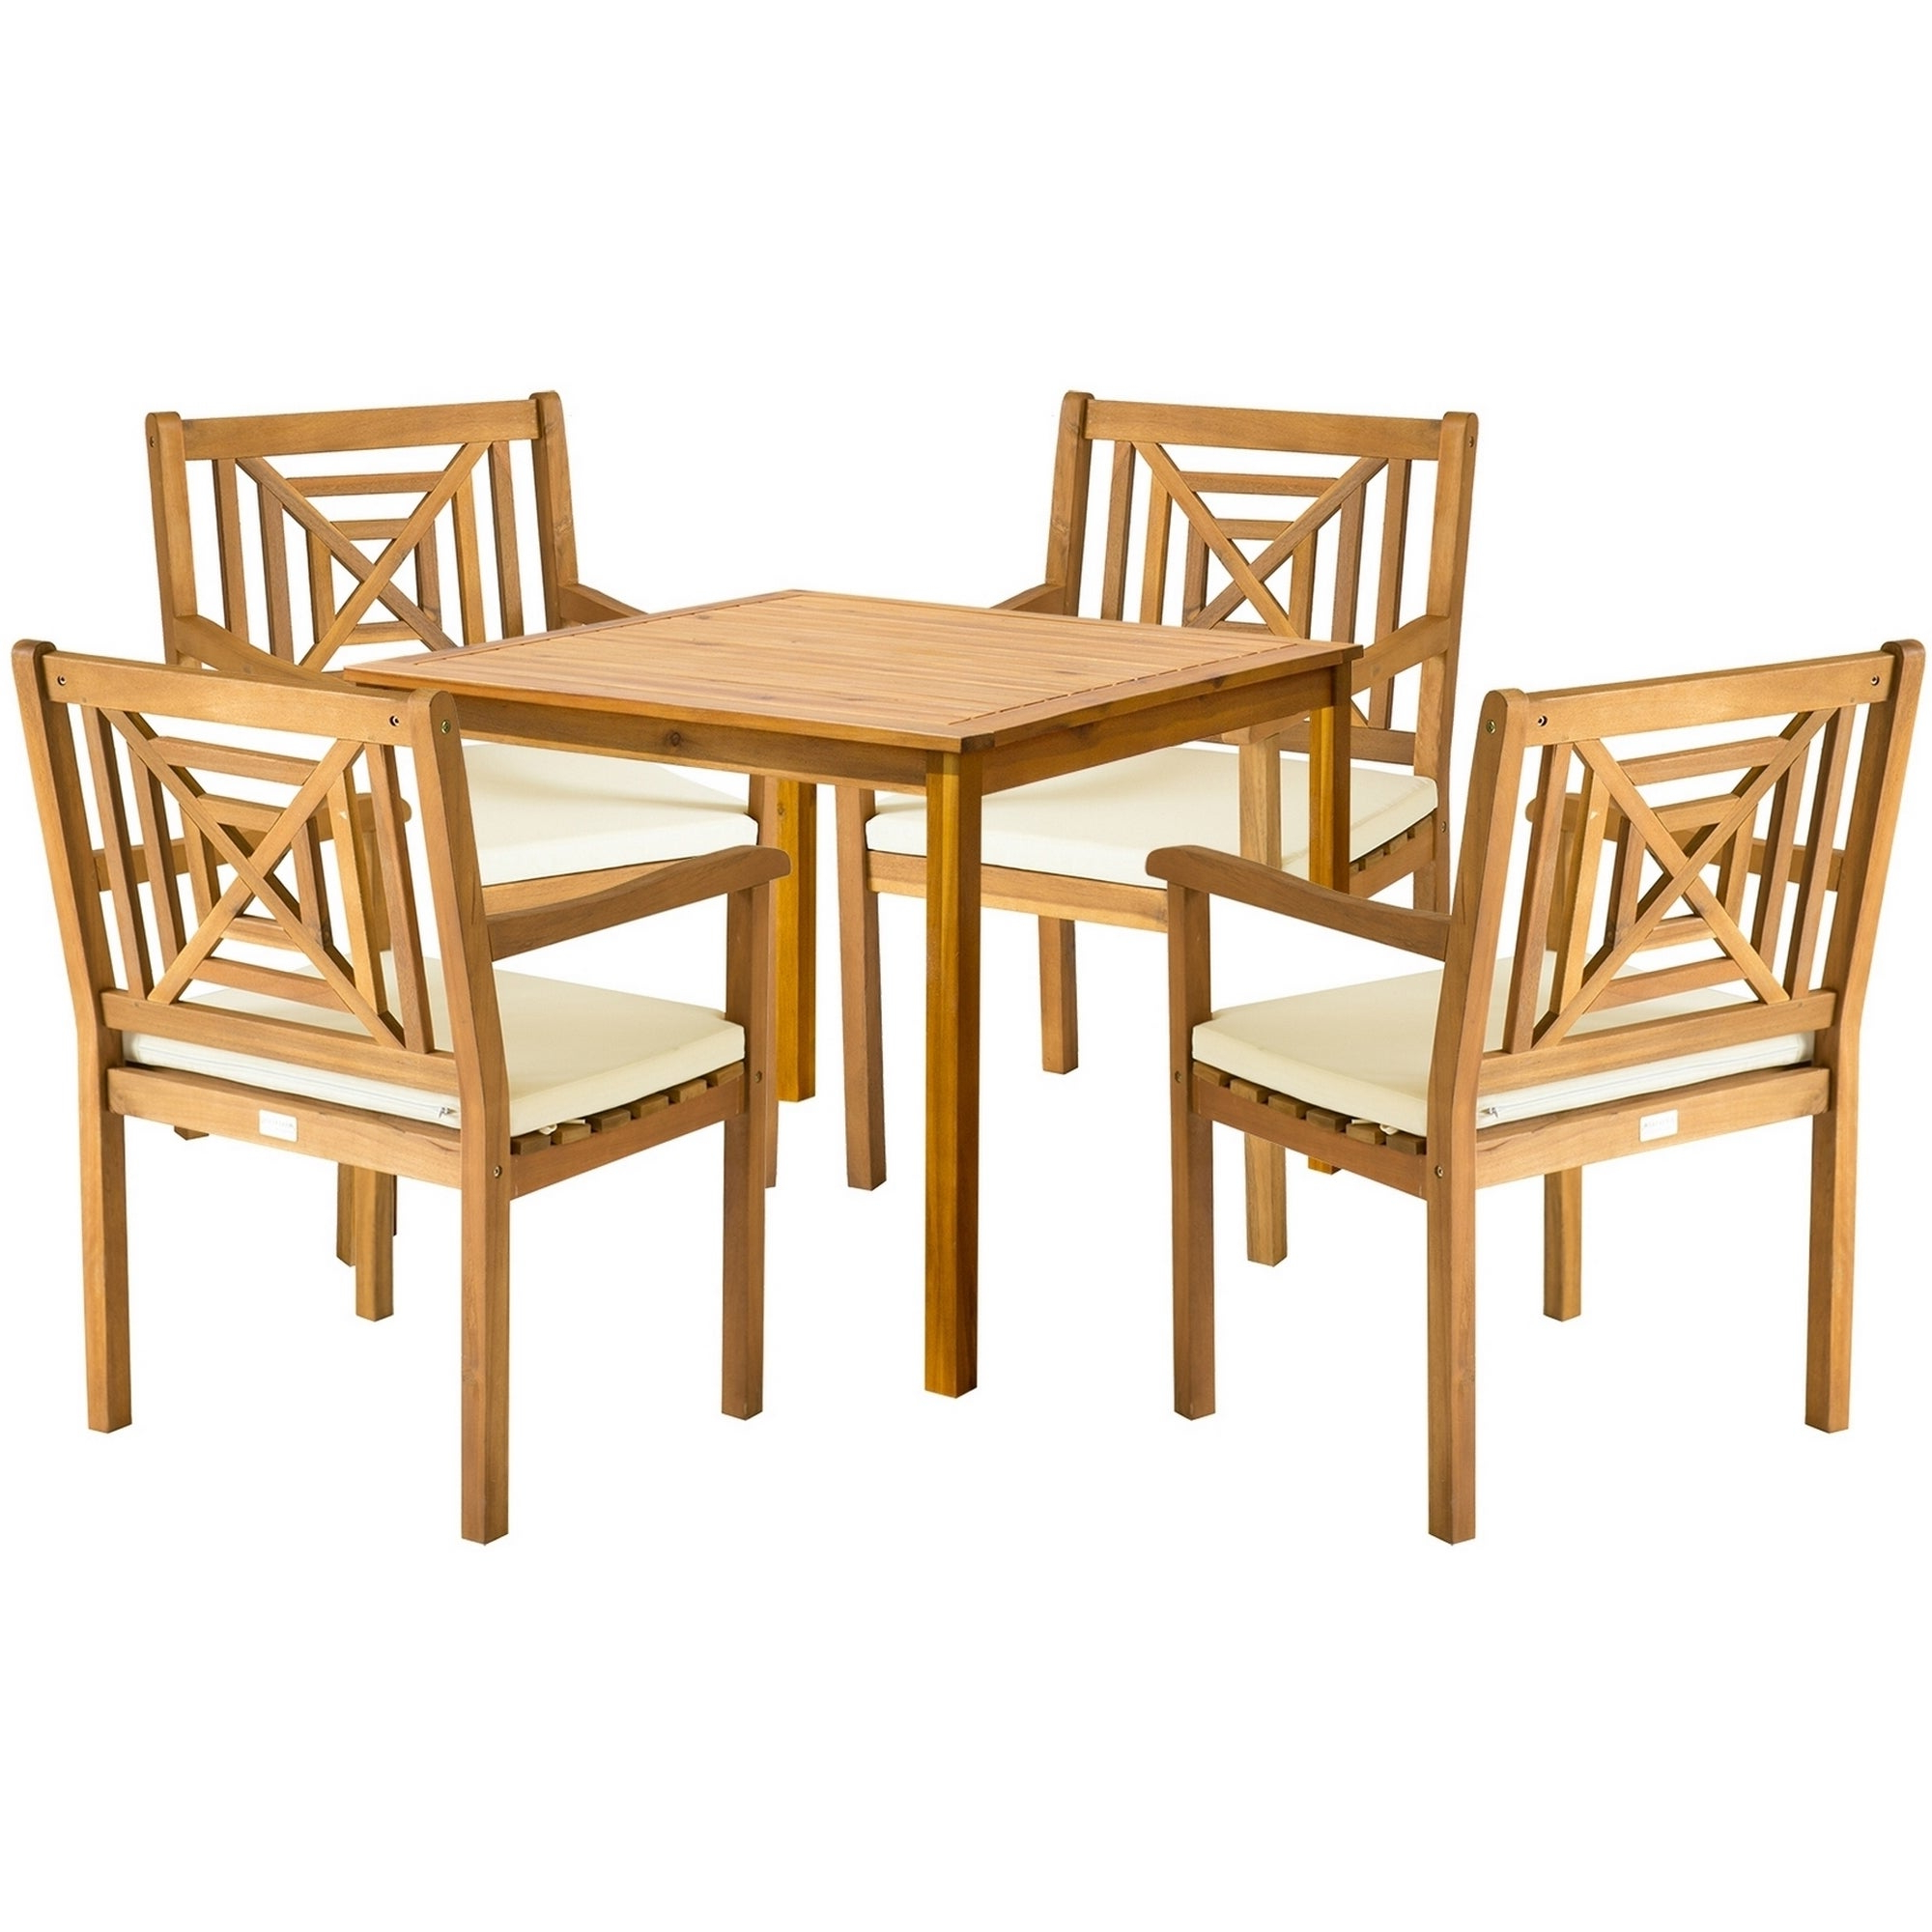 Shop Safavieh Outdoor Living Del Mar Brown Acacia Wood 5 Piece Beige Intended For Most Recently Released Delmar 5 Piece Dining Sets (View 21 of 25)